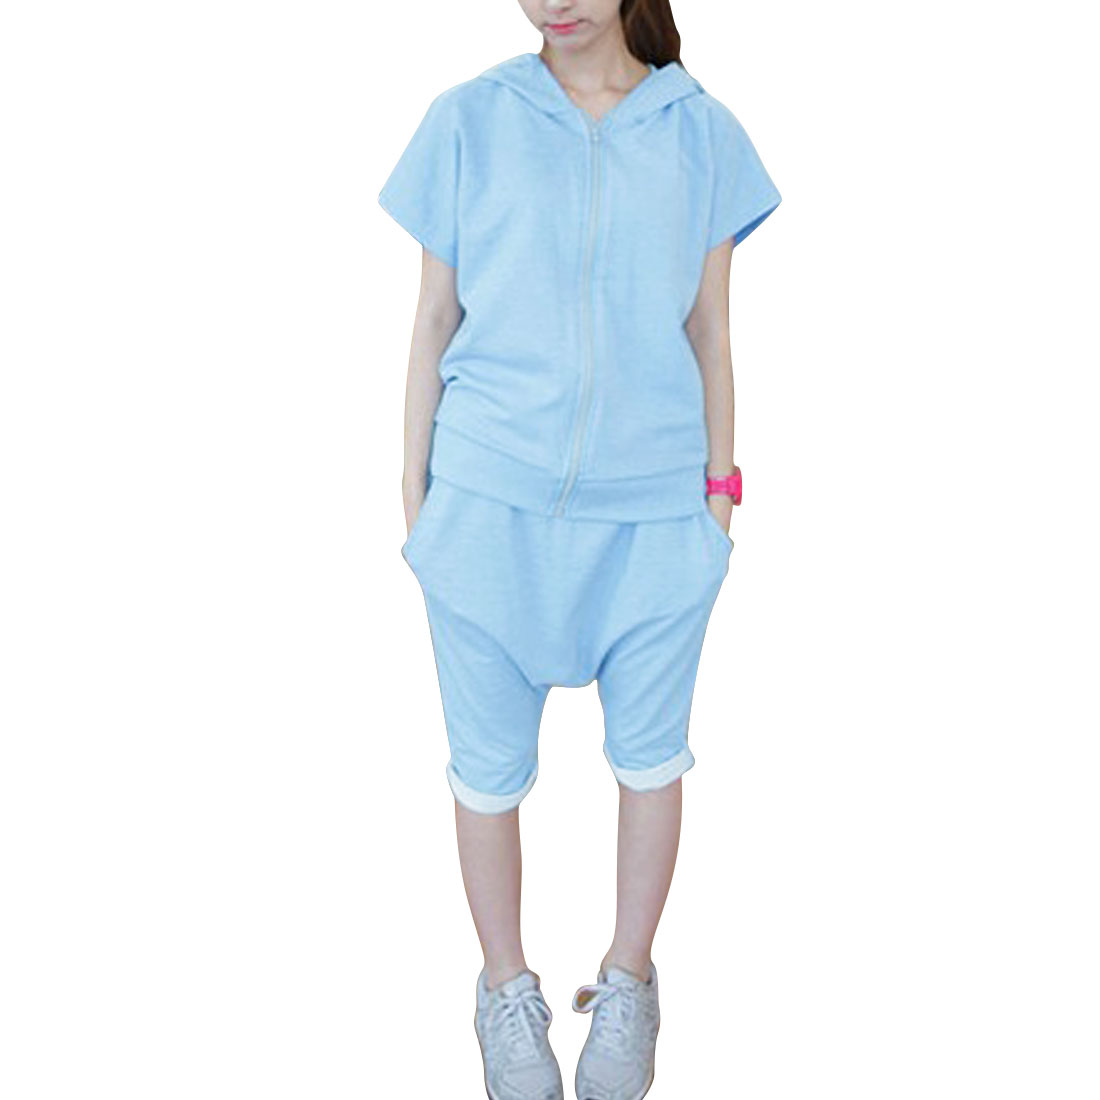 Women Zip Up Hooded Top w Drawstring Harem Shorts Sets Blue XS